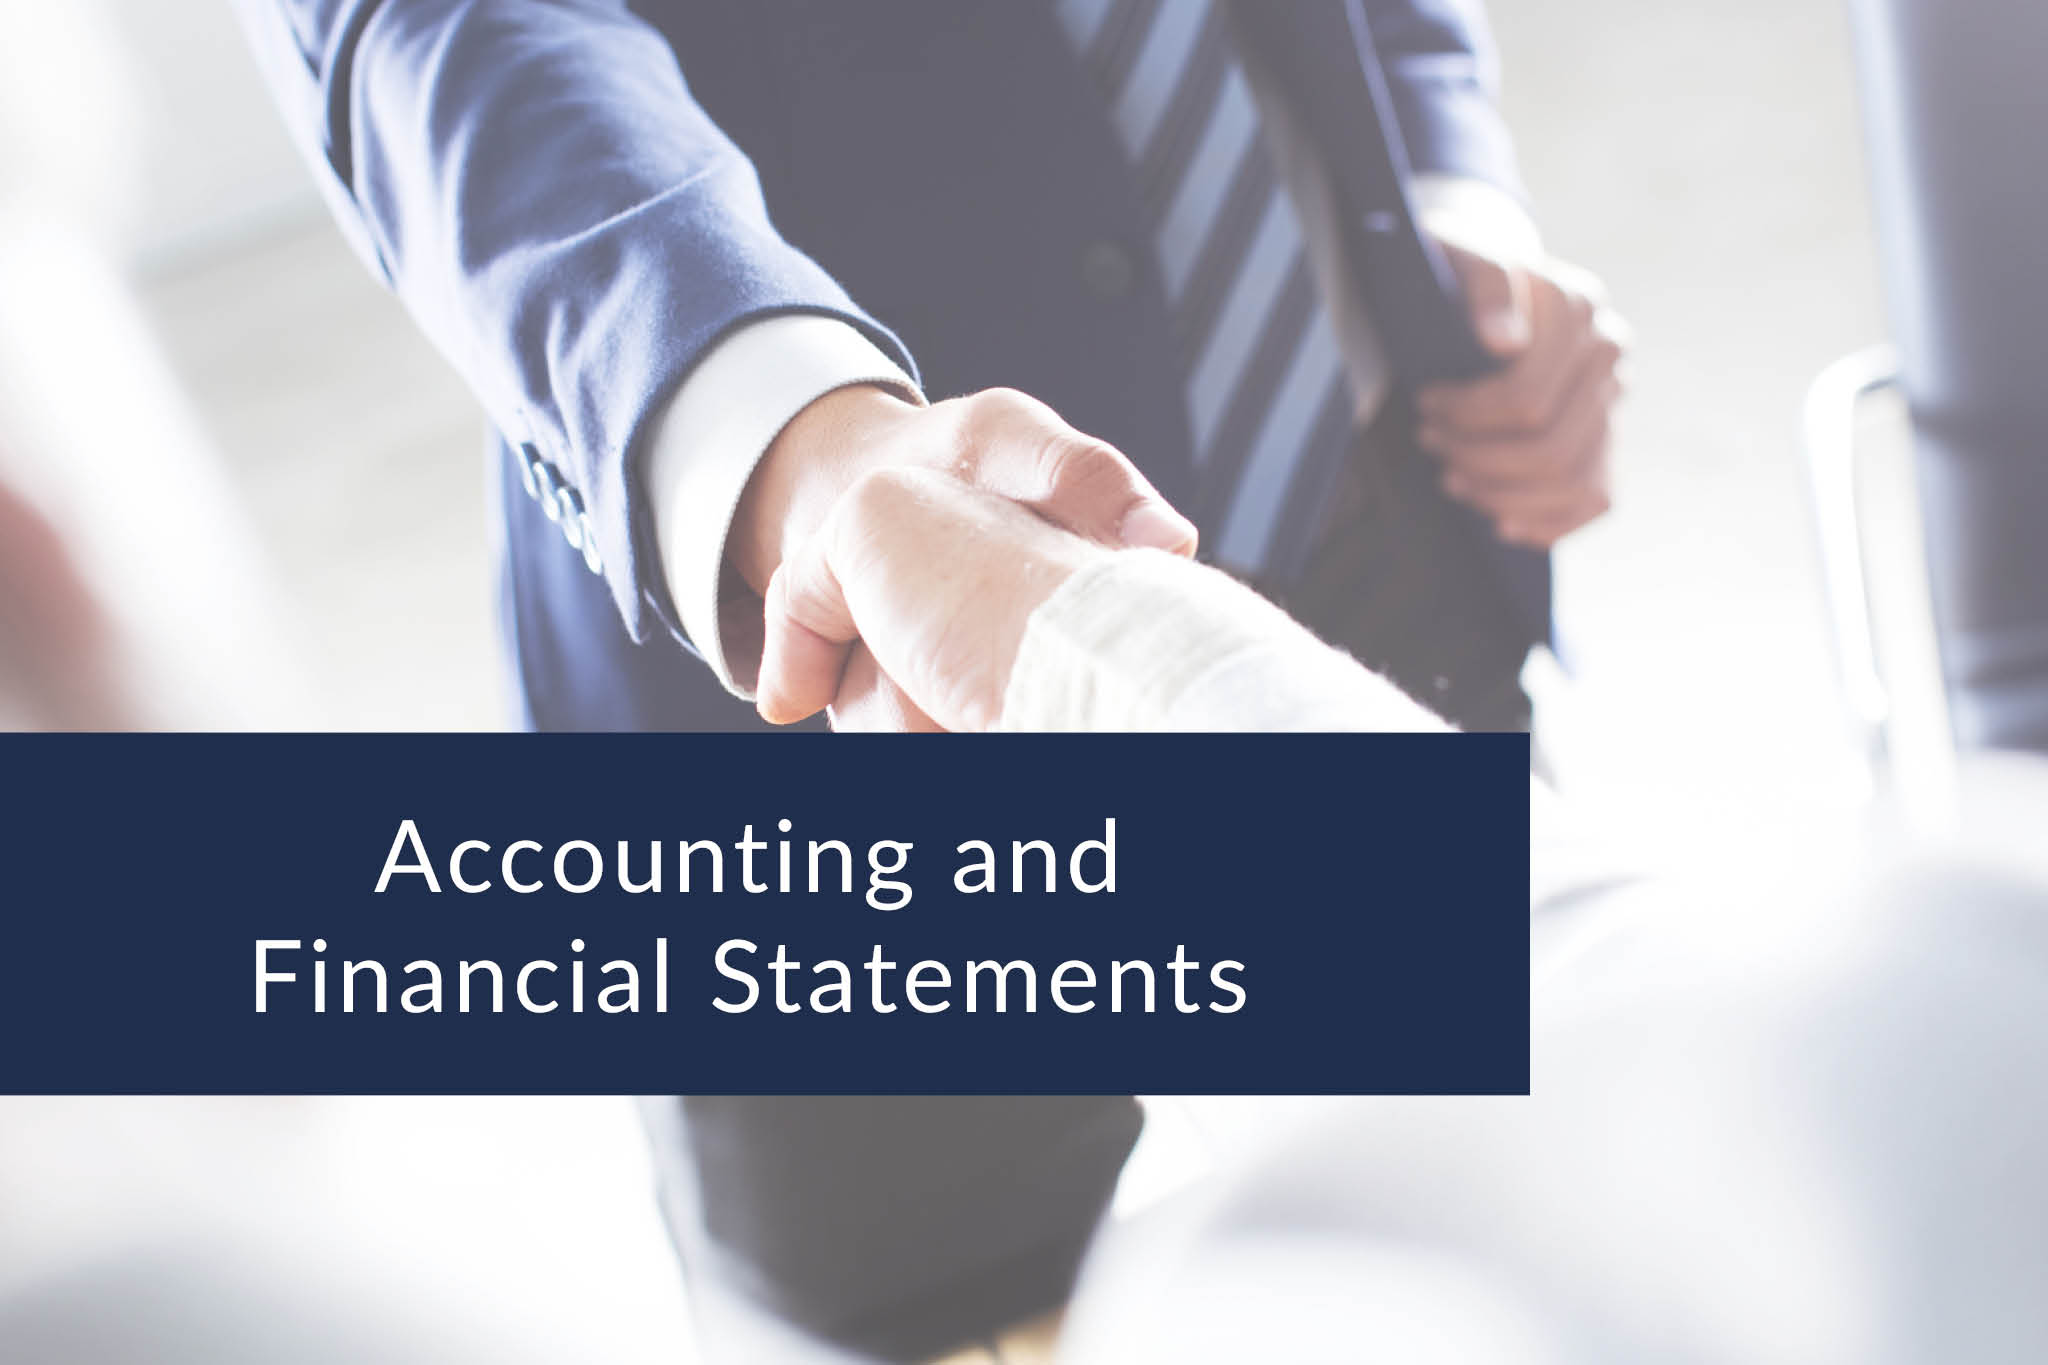 Accounting and financial statements - Kopie